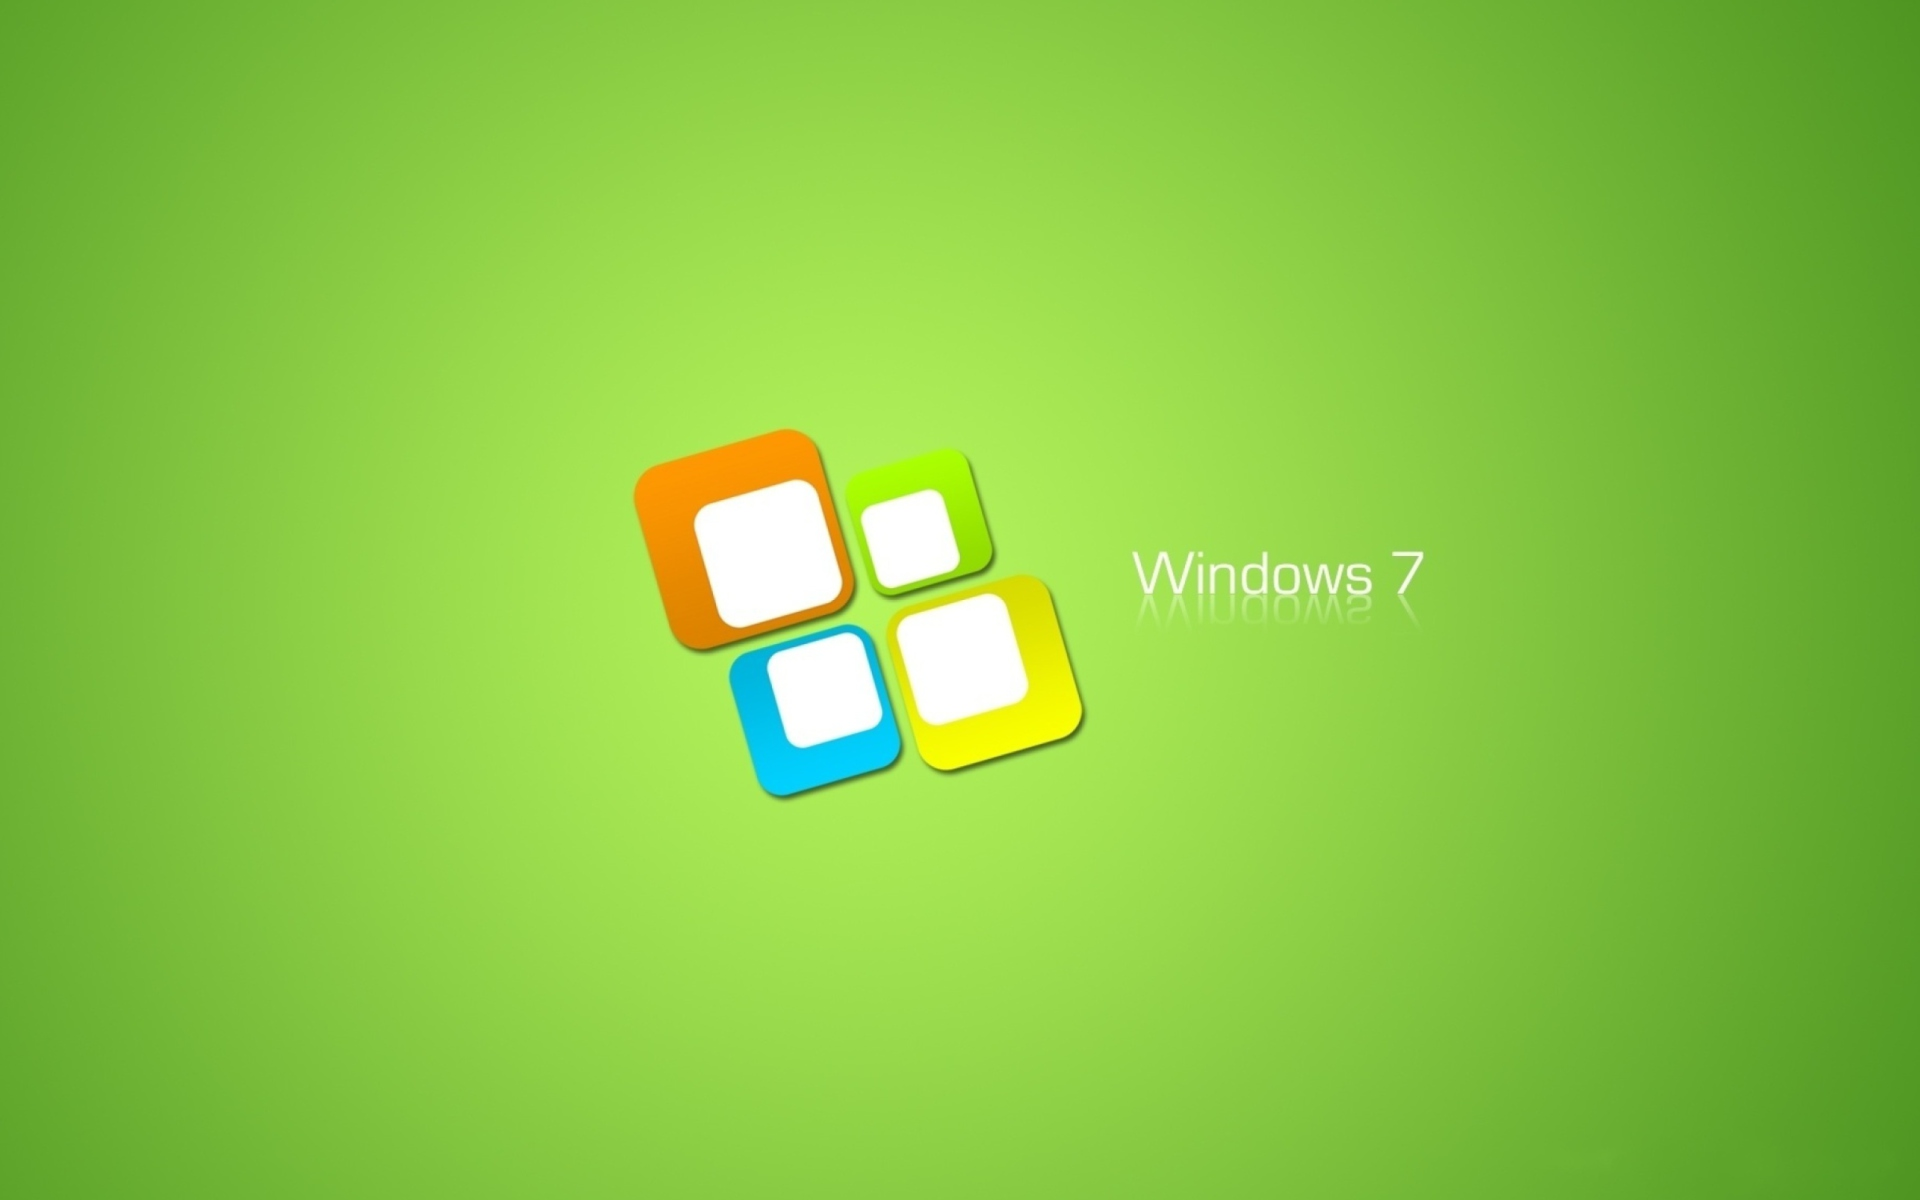 Fondos De Escritorio Windows 7 Full Hd: Fondos De Pantalla Gratis Para Widescreen